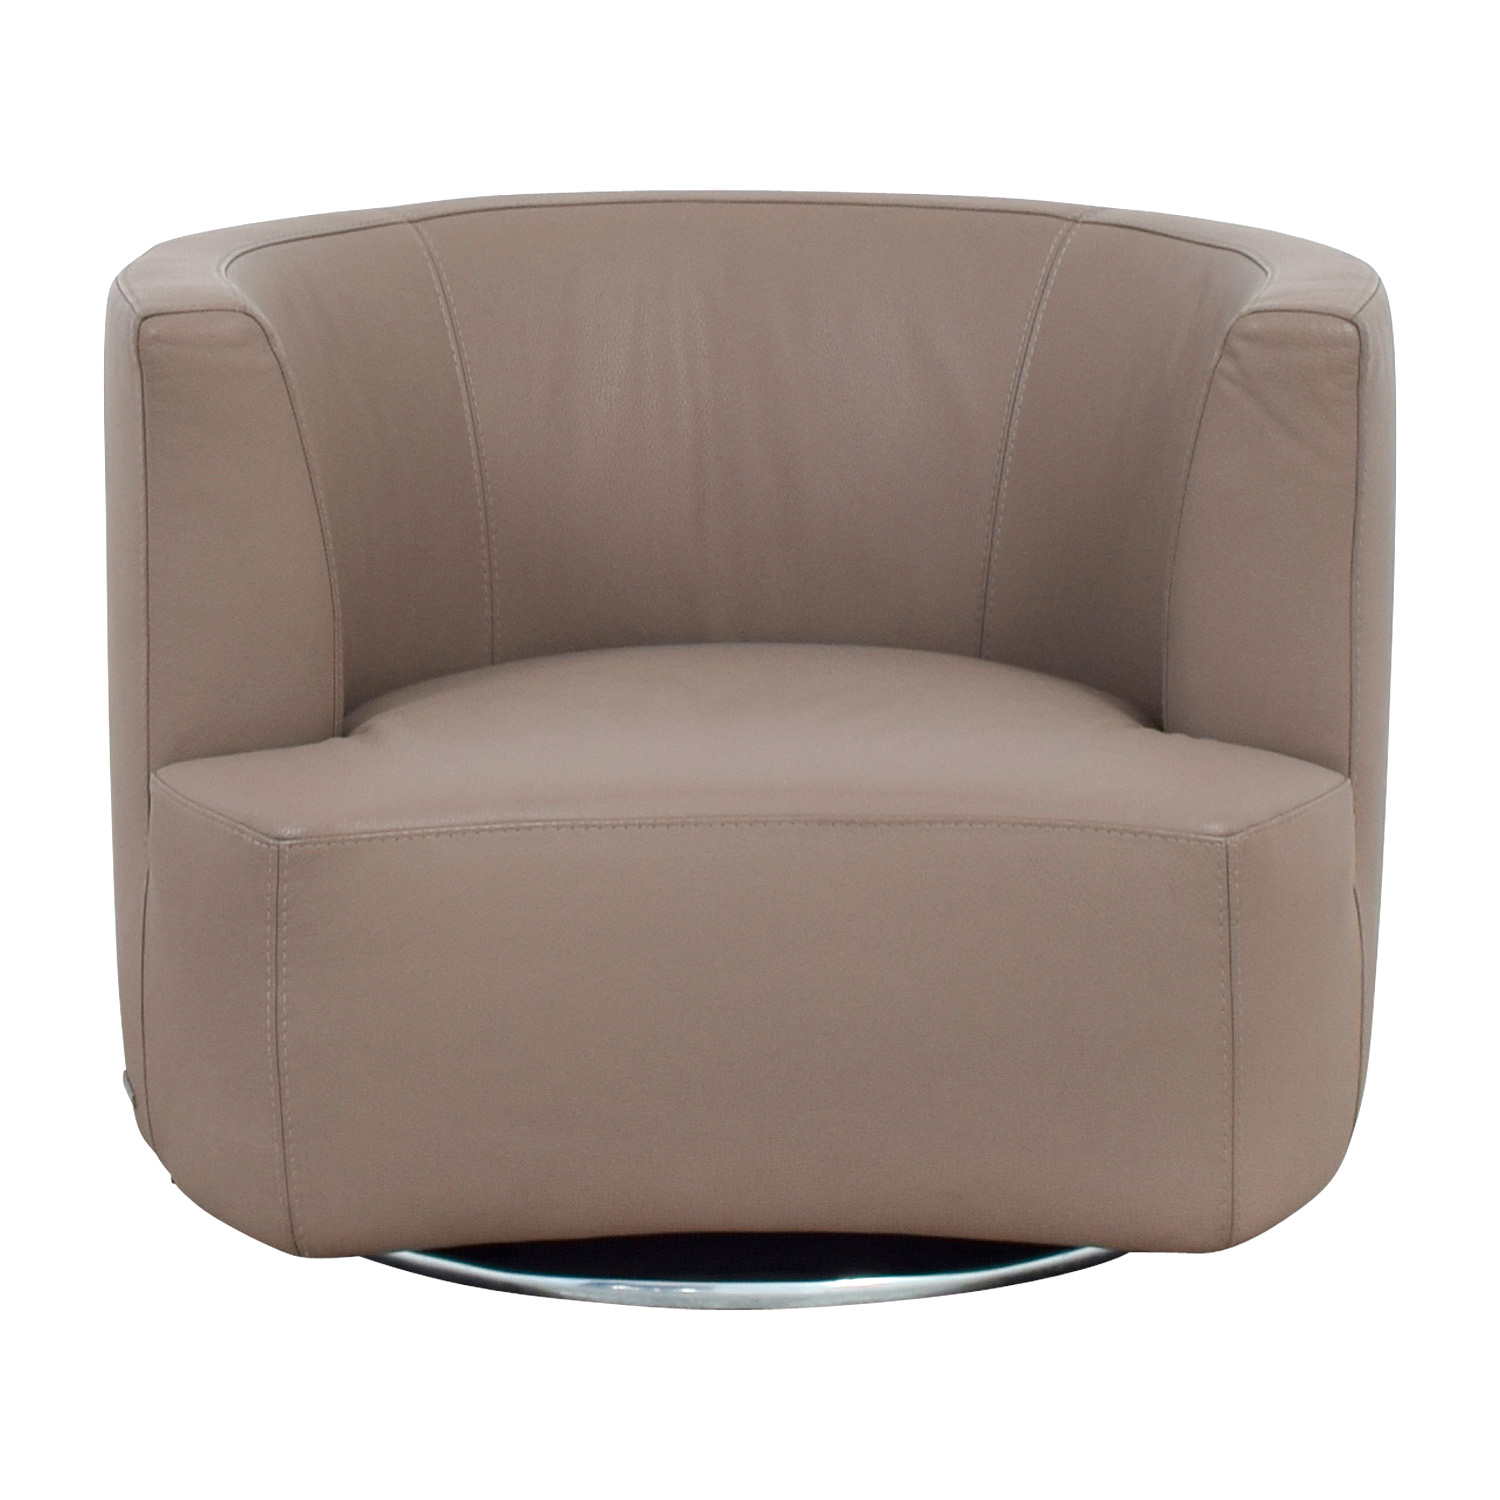 Leather swivel chair tan tan leather swivel office chair for Swivel club chair leather